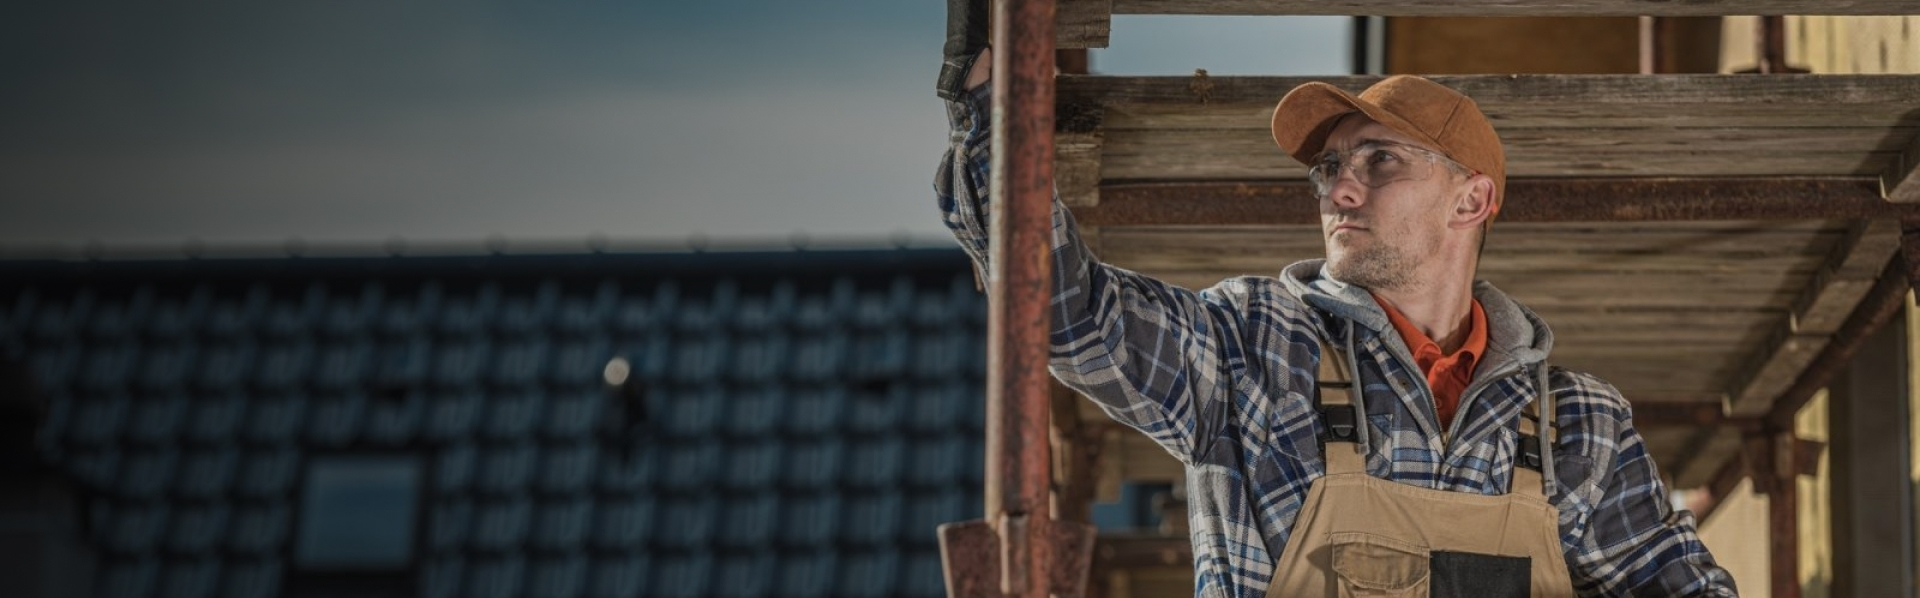 Man in a brown hat and blue plaid shirt holding a pipe while working on a tile roof.